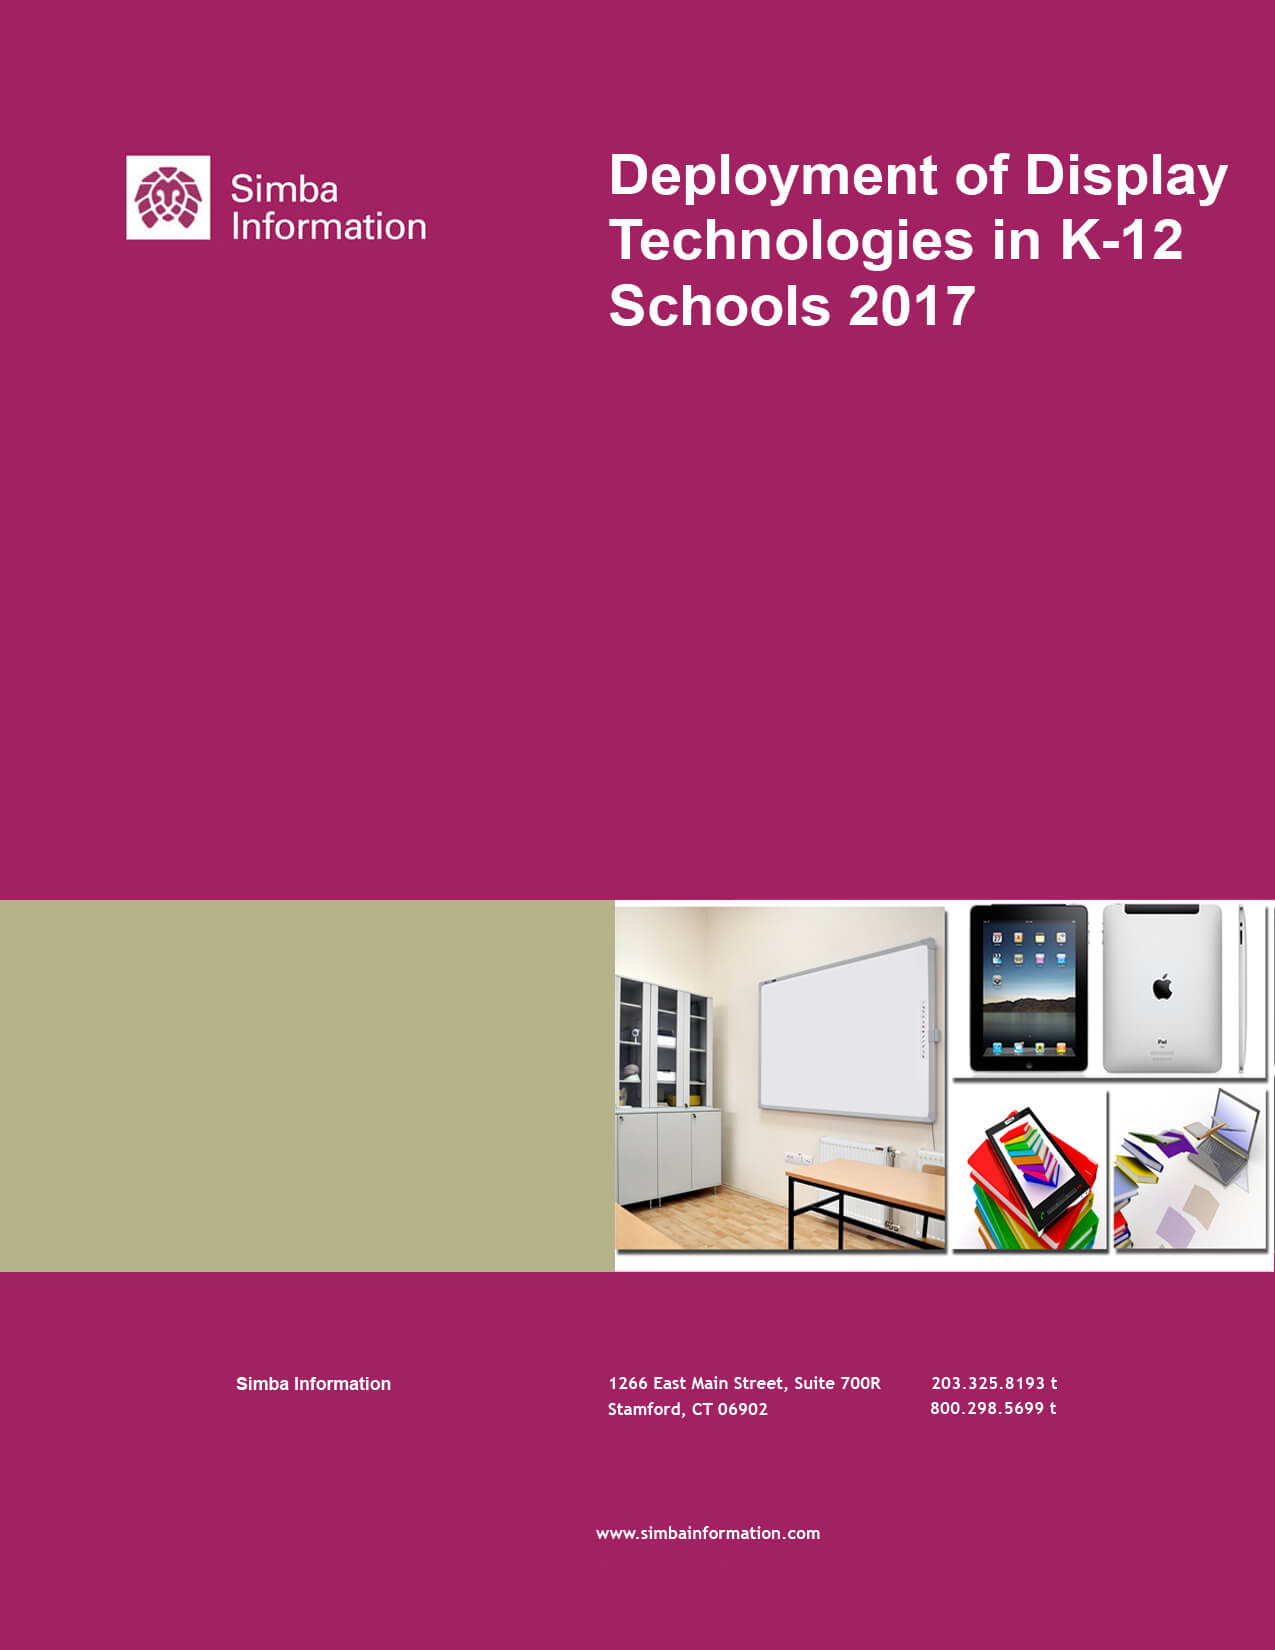 Is Spending for Classroom Hardware Short-Changing Materials Spending?